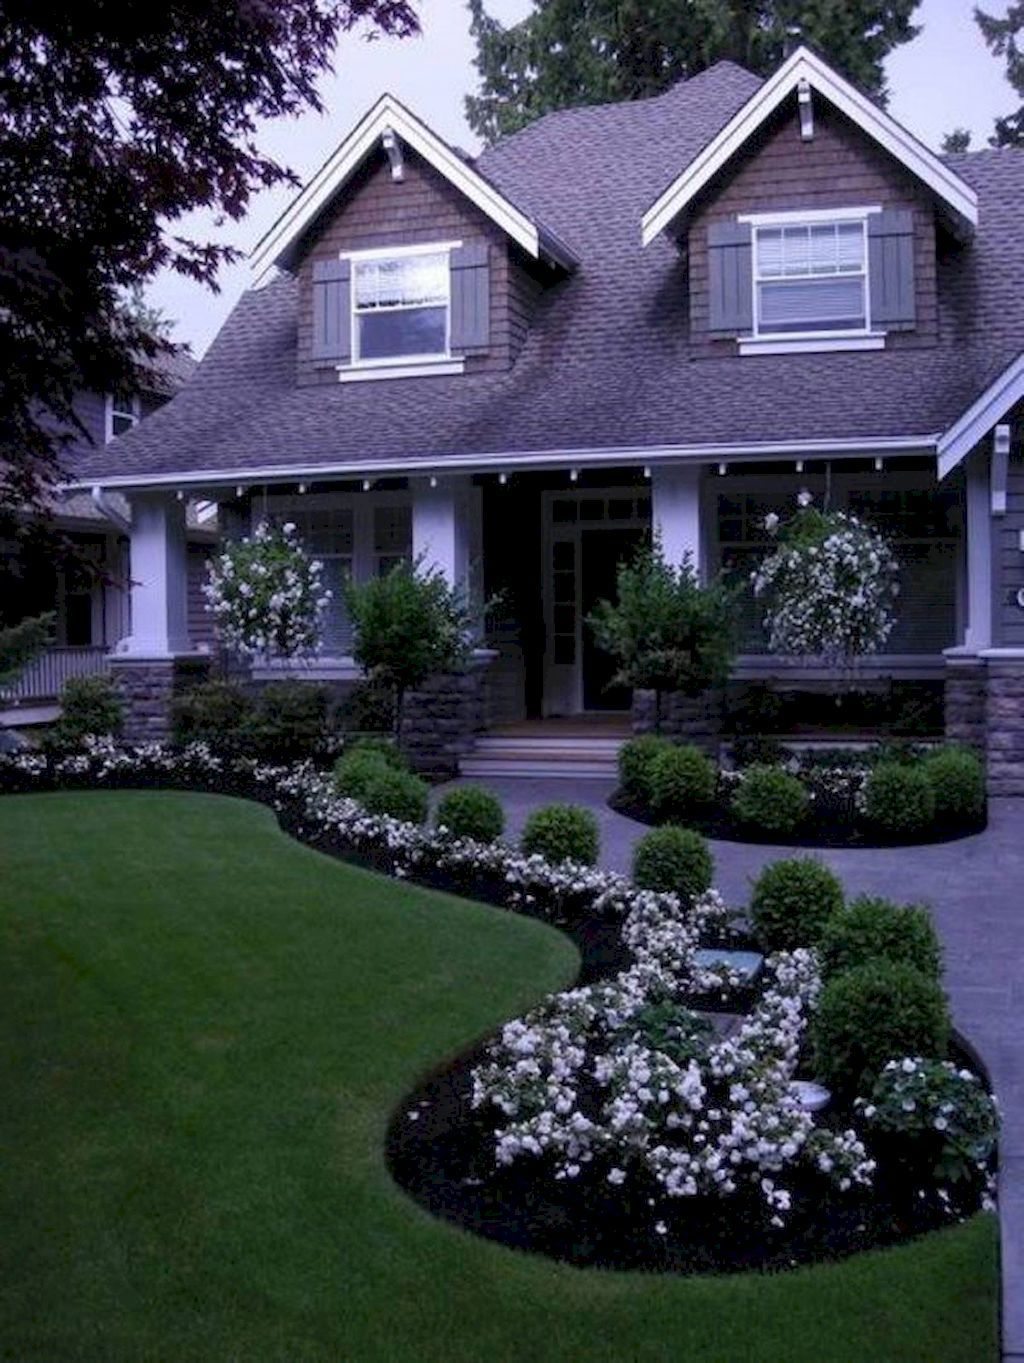 40 beautiful front yard landscaping ideas yard for Front garden design ideas